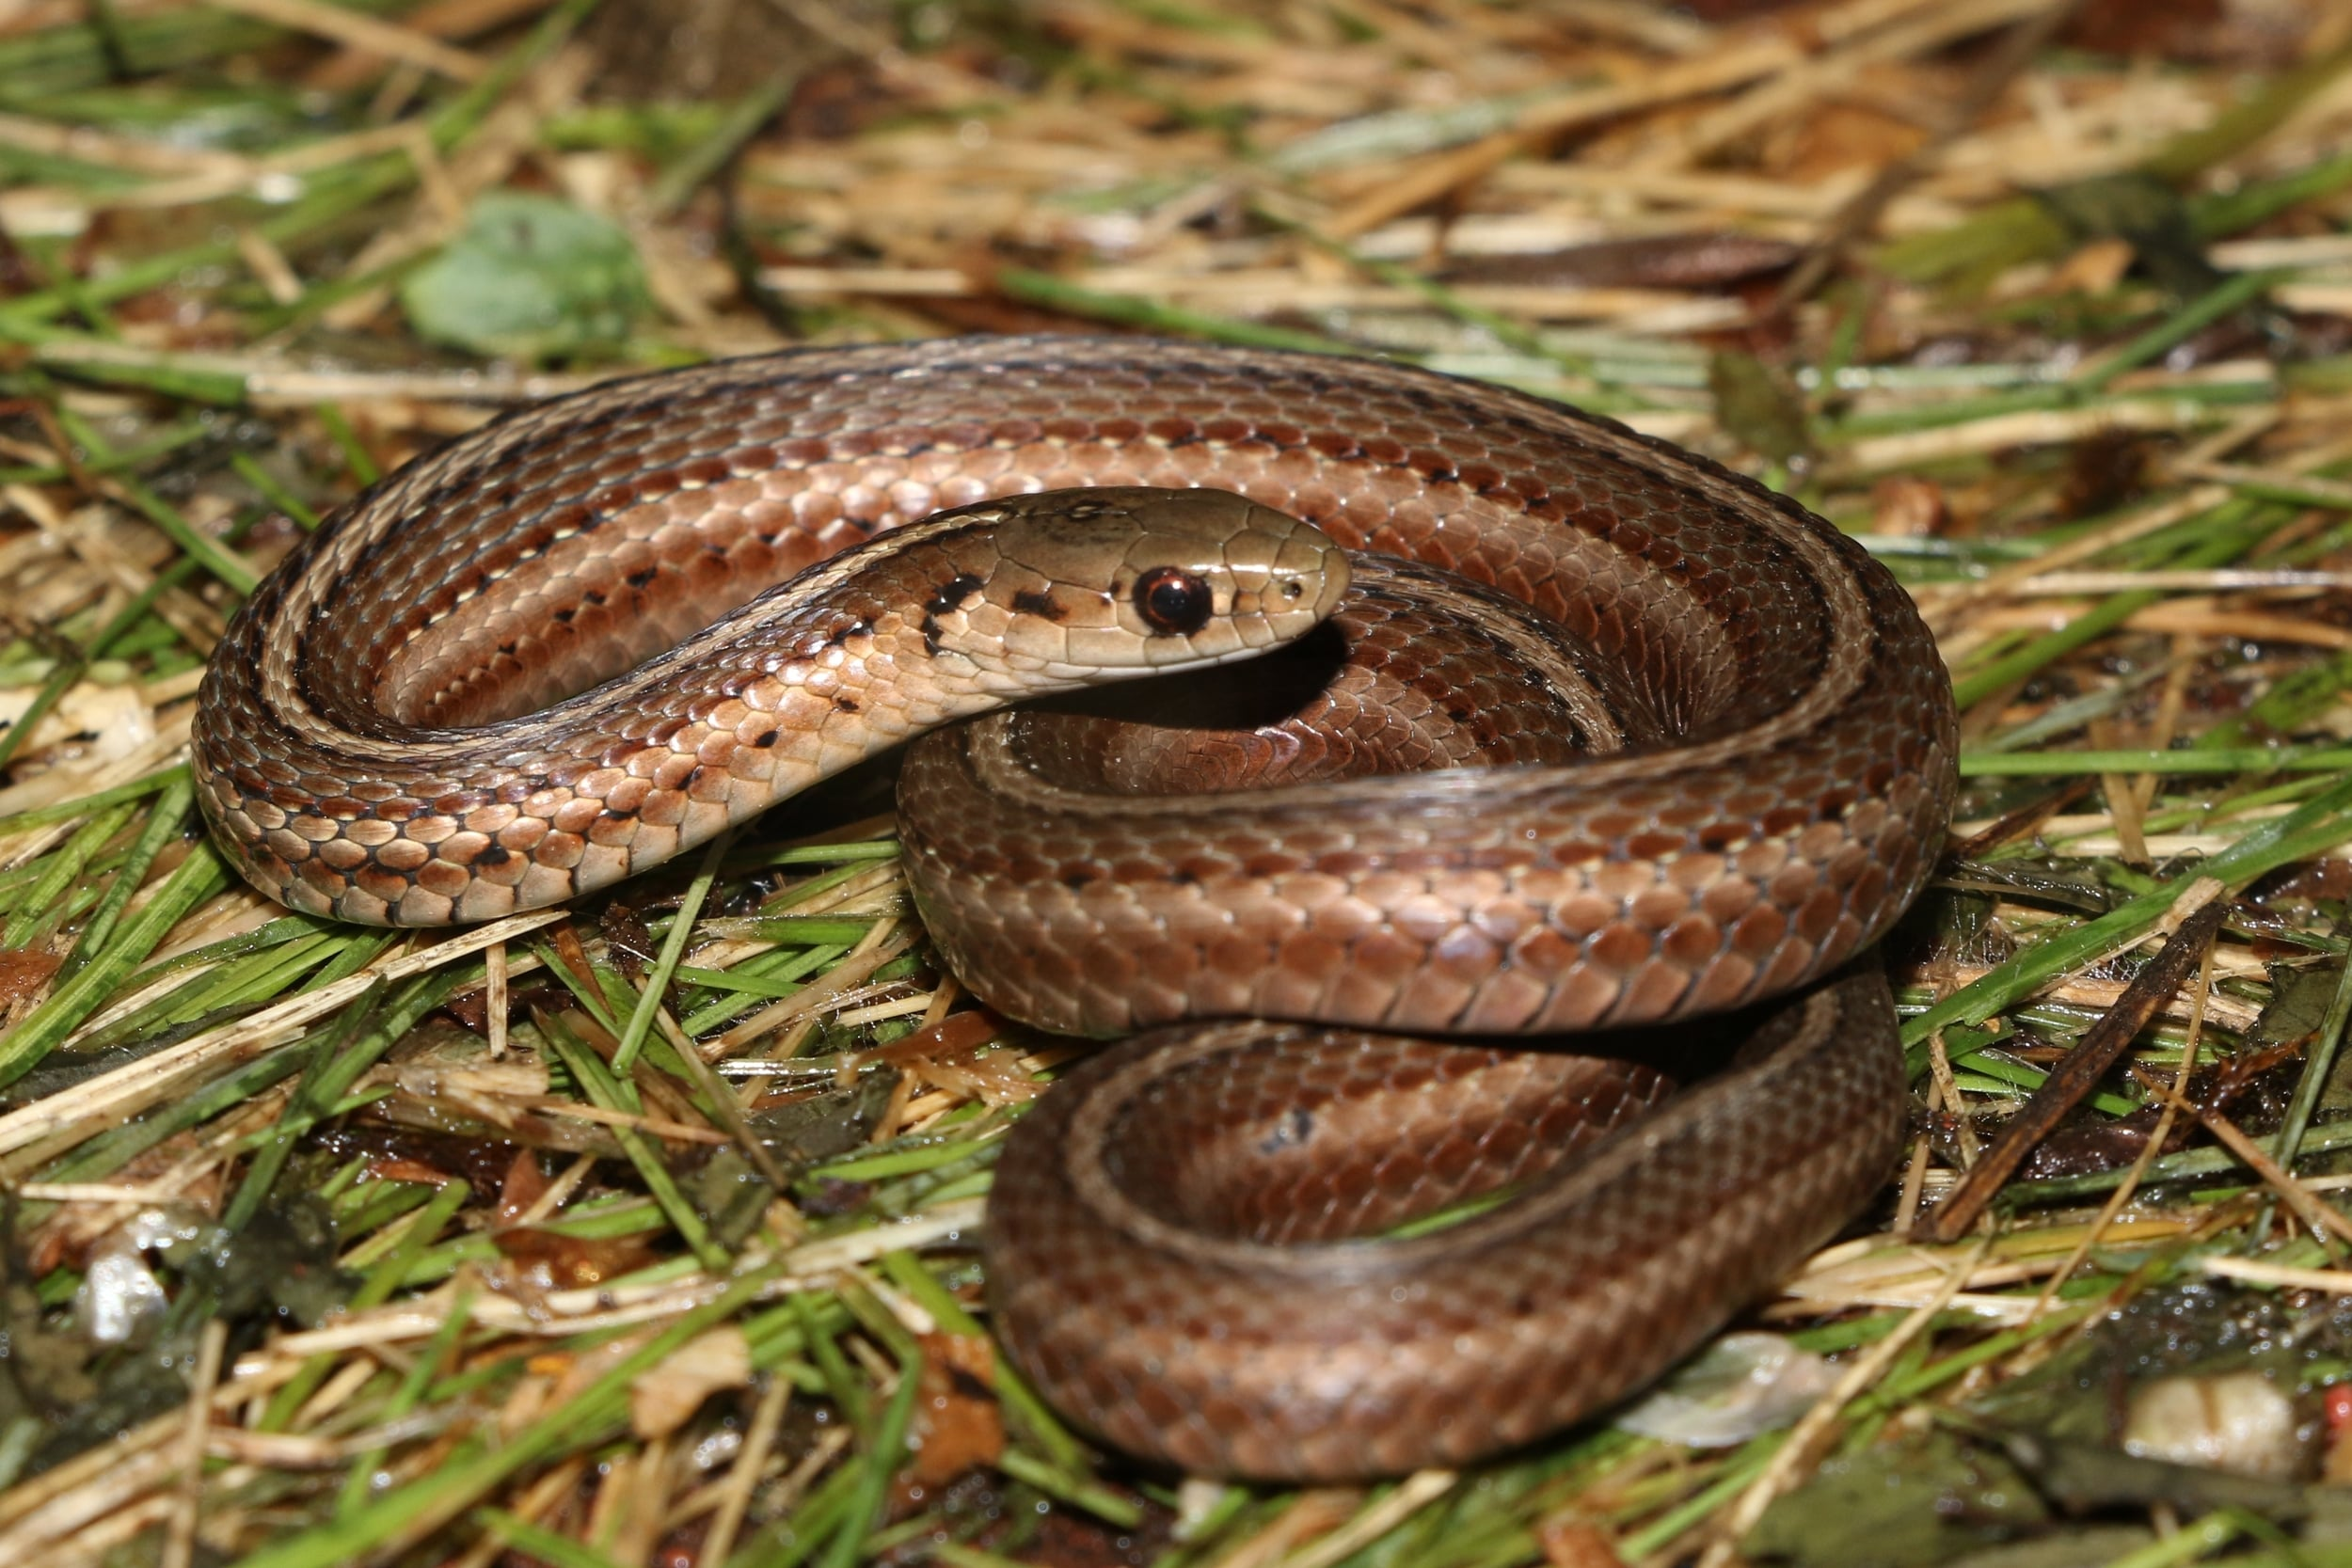 Short-headed Gartersnake - This was a sub-adult.